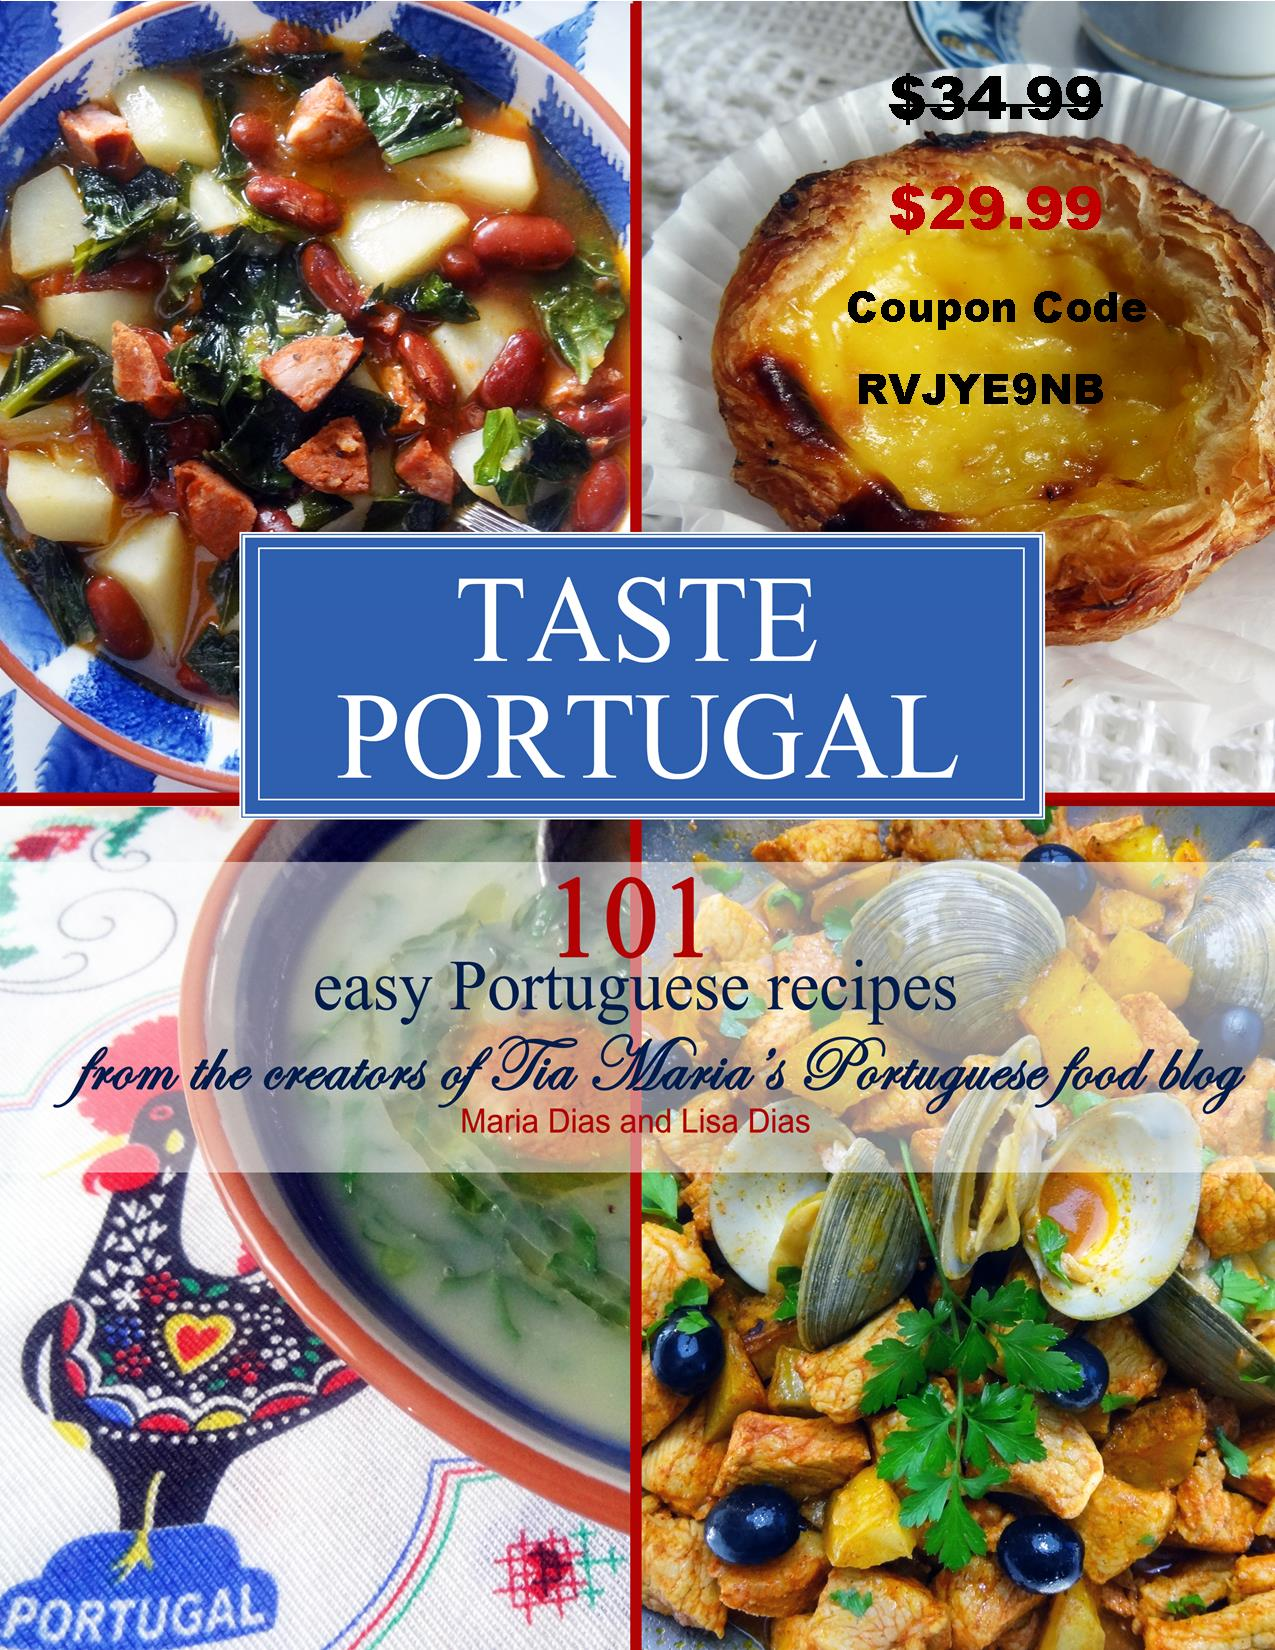 Order Taste Portugal CookBook $5 off my cookbook! Ships to Canada and other countries